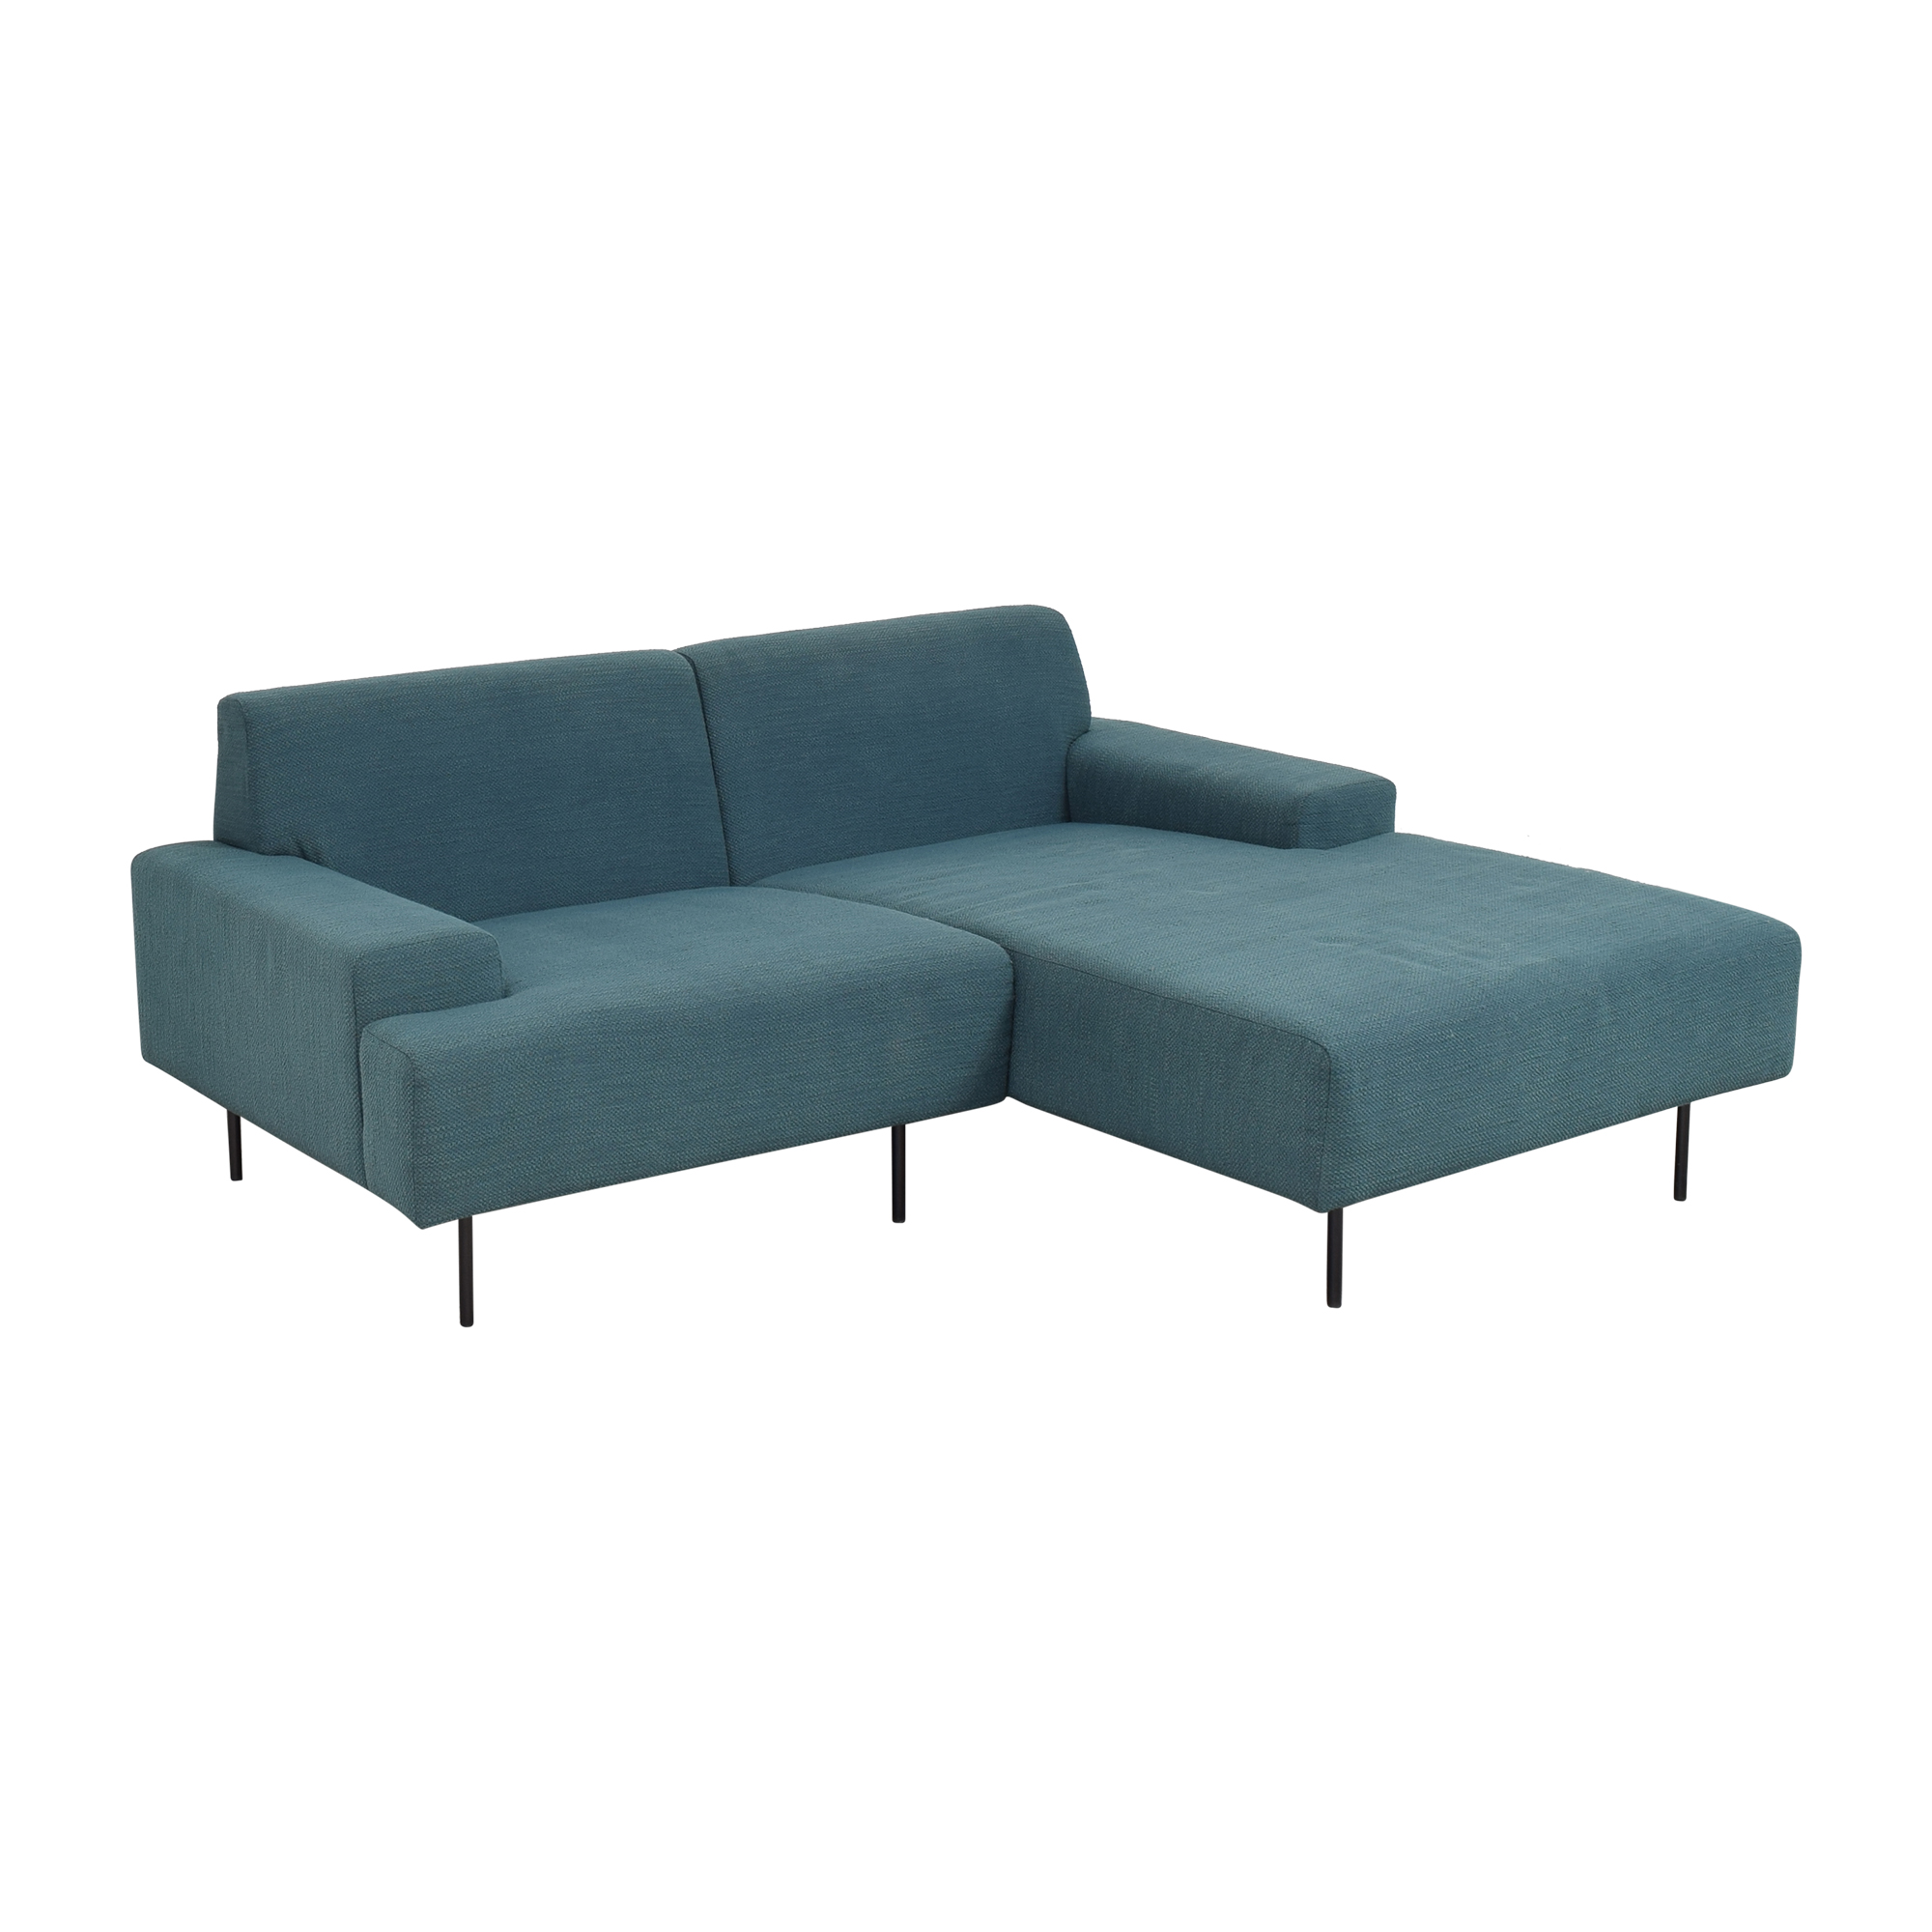 West Elm West Elm Beckham Two Piece Chaise Sectional Sofa ma